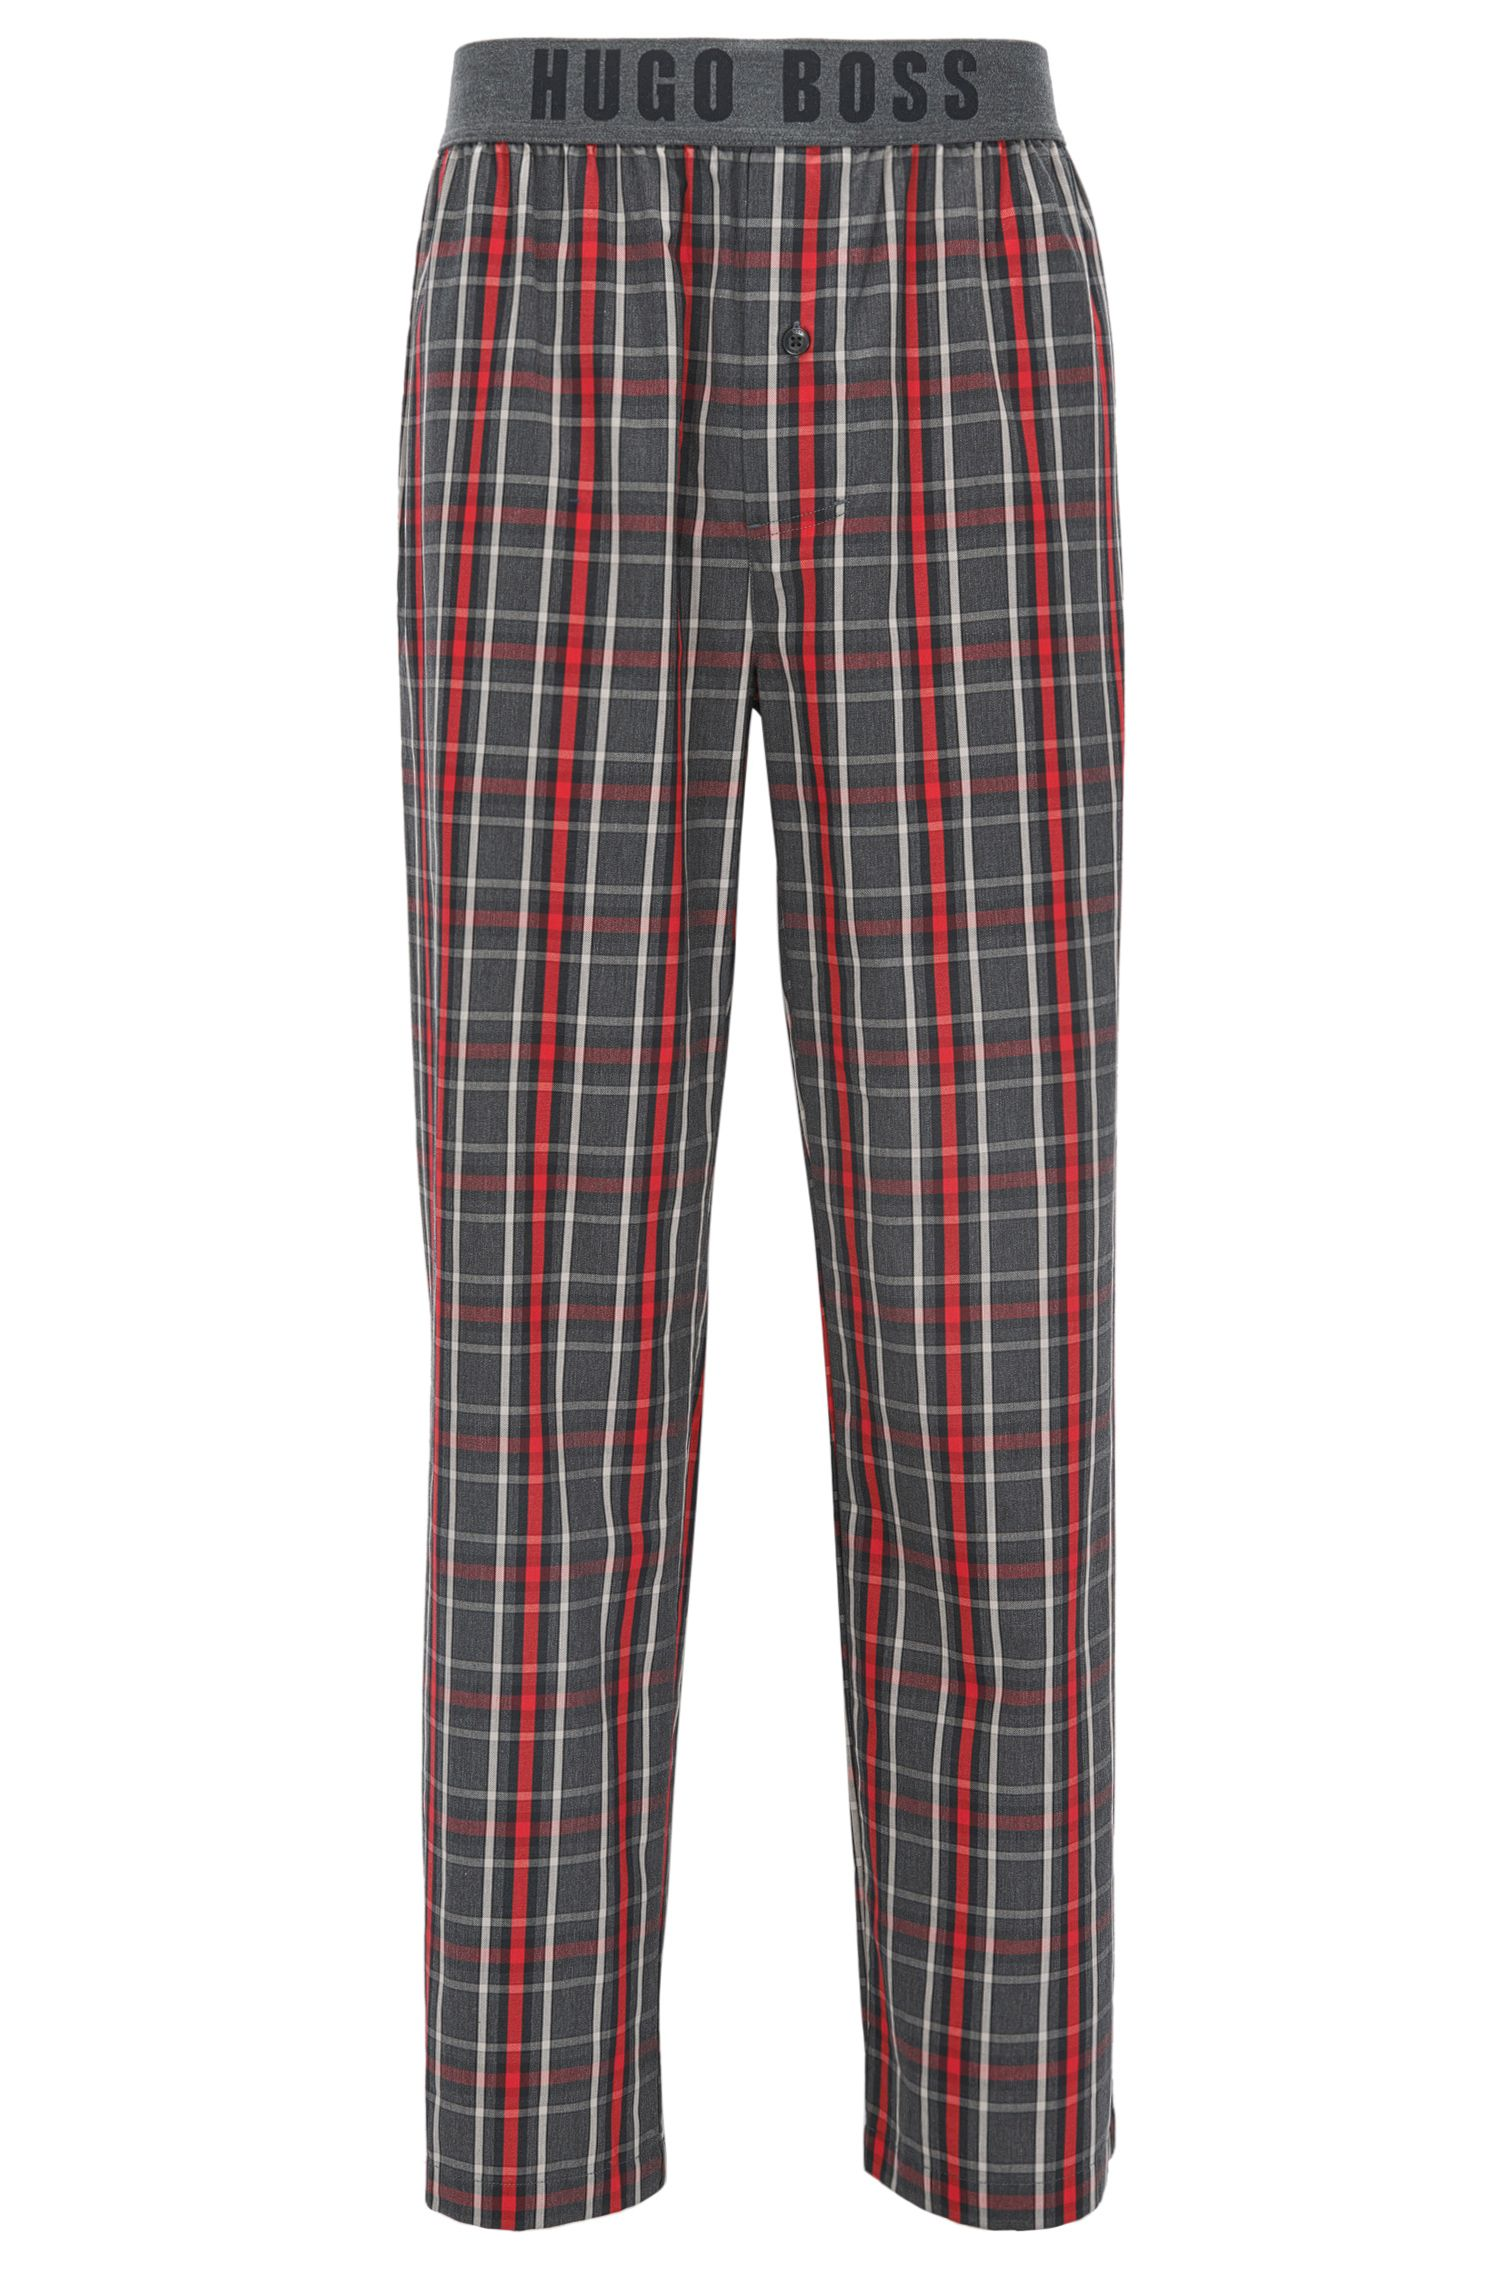 Checked pyjama bottoms in cotton twill with exposed logo waistband